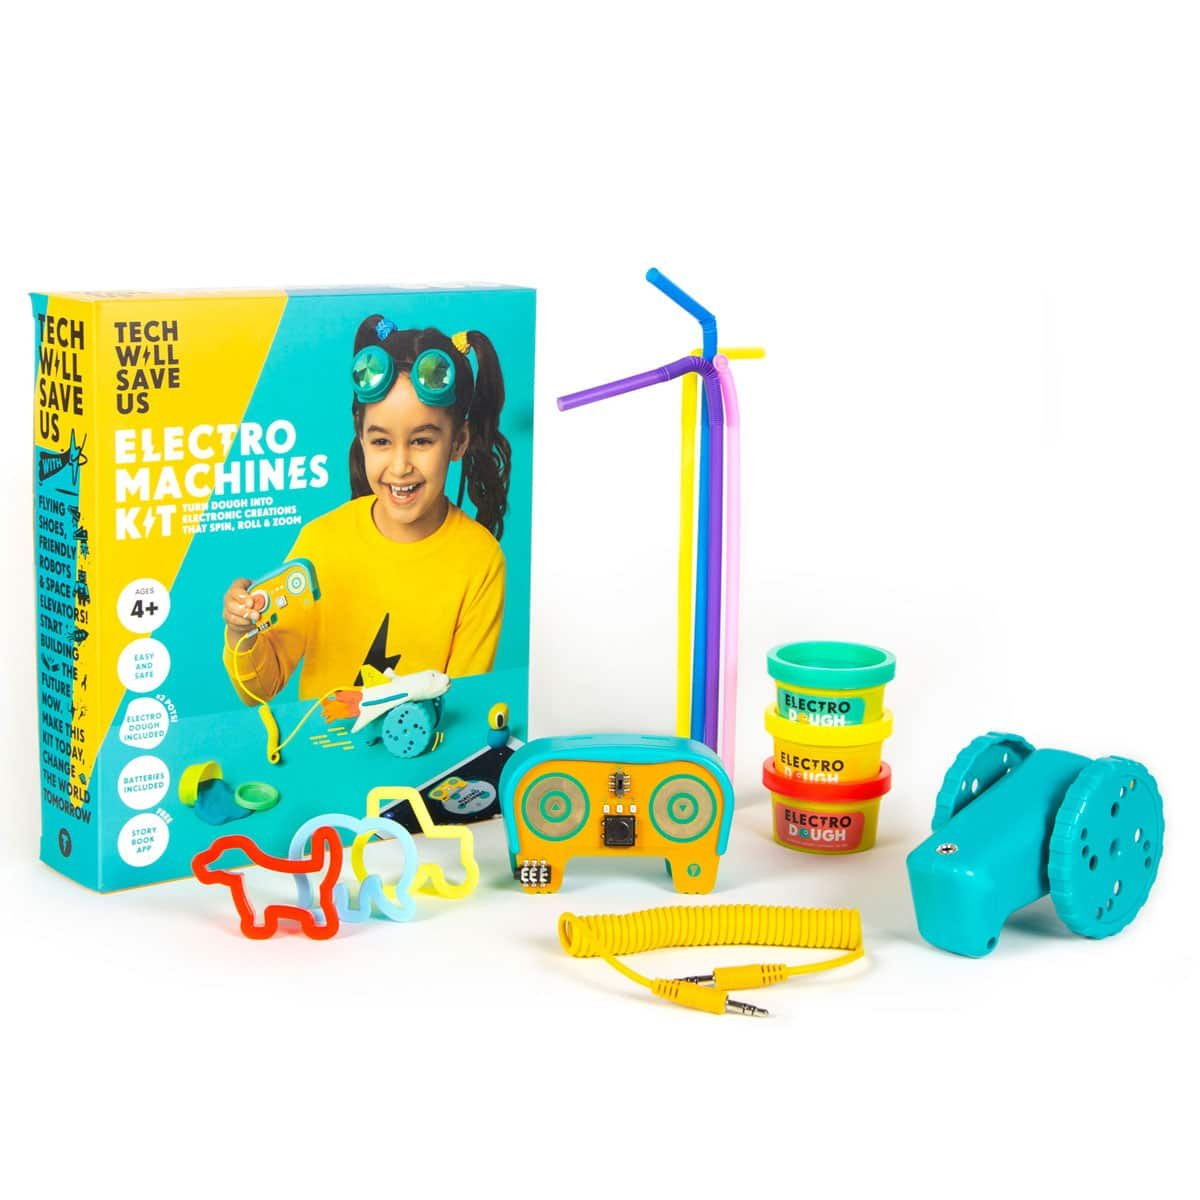 Electro Machines Kit by Technology Will Save Us